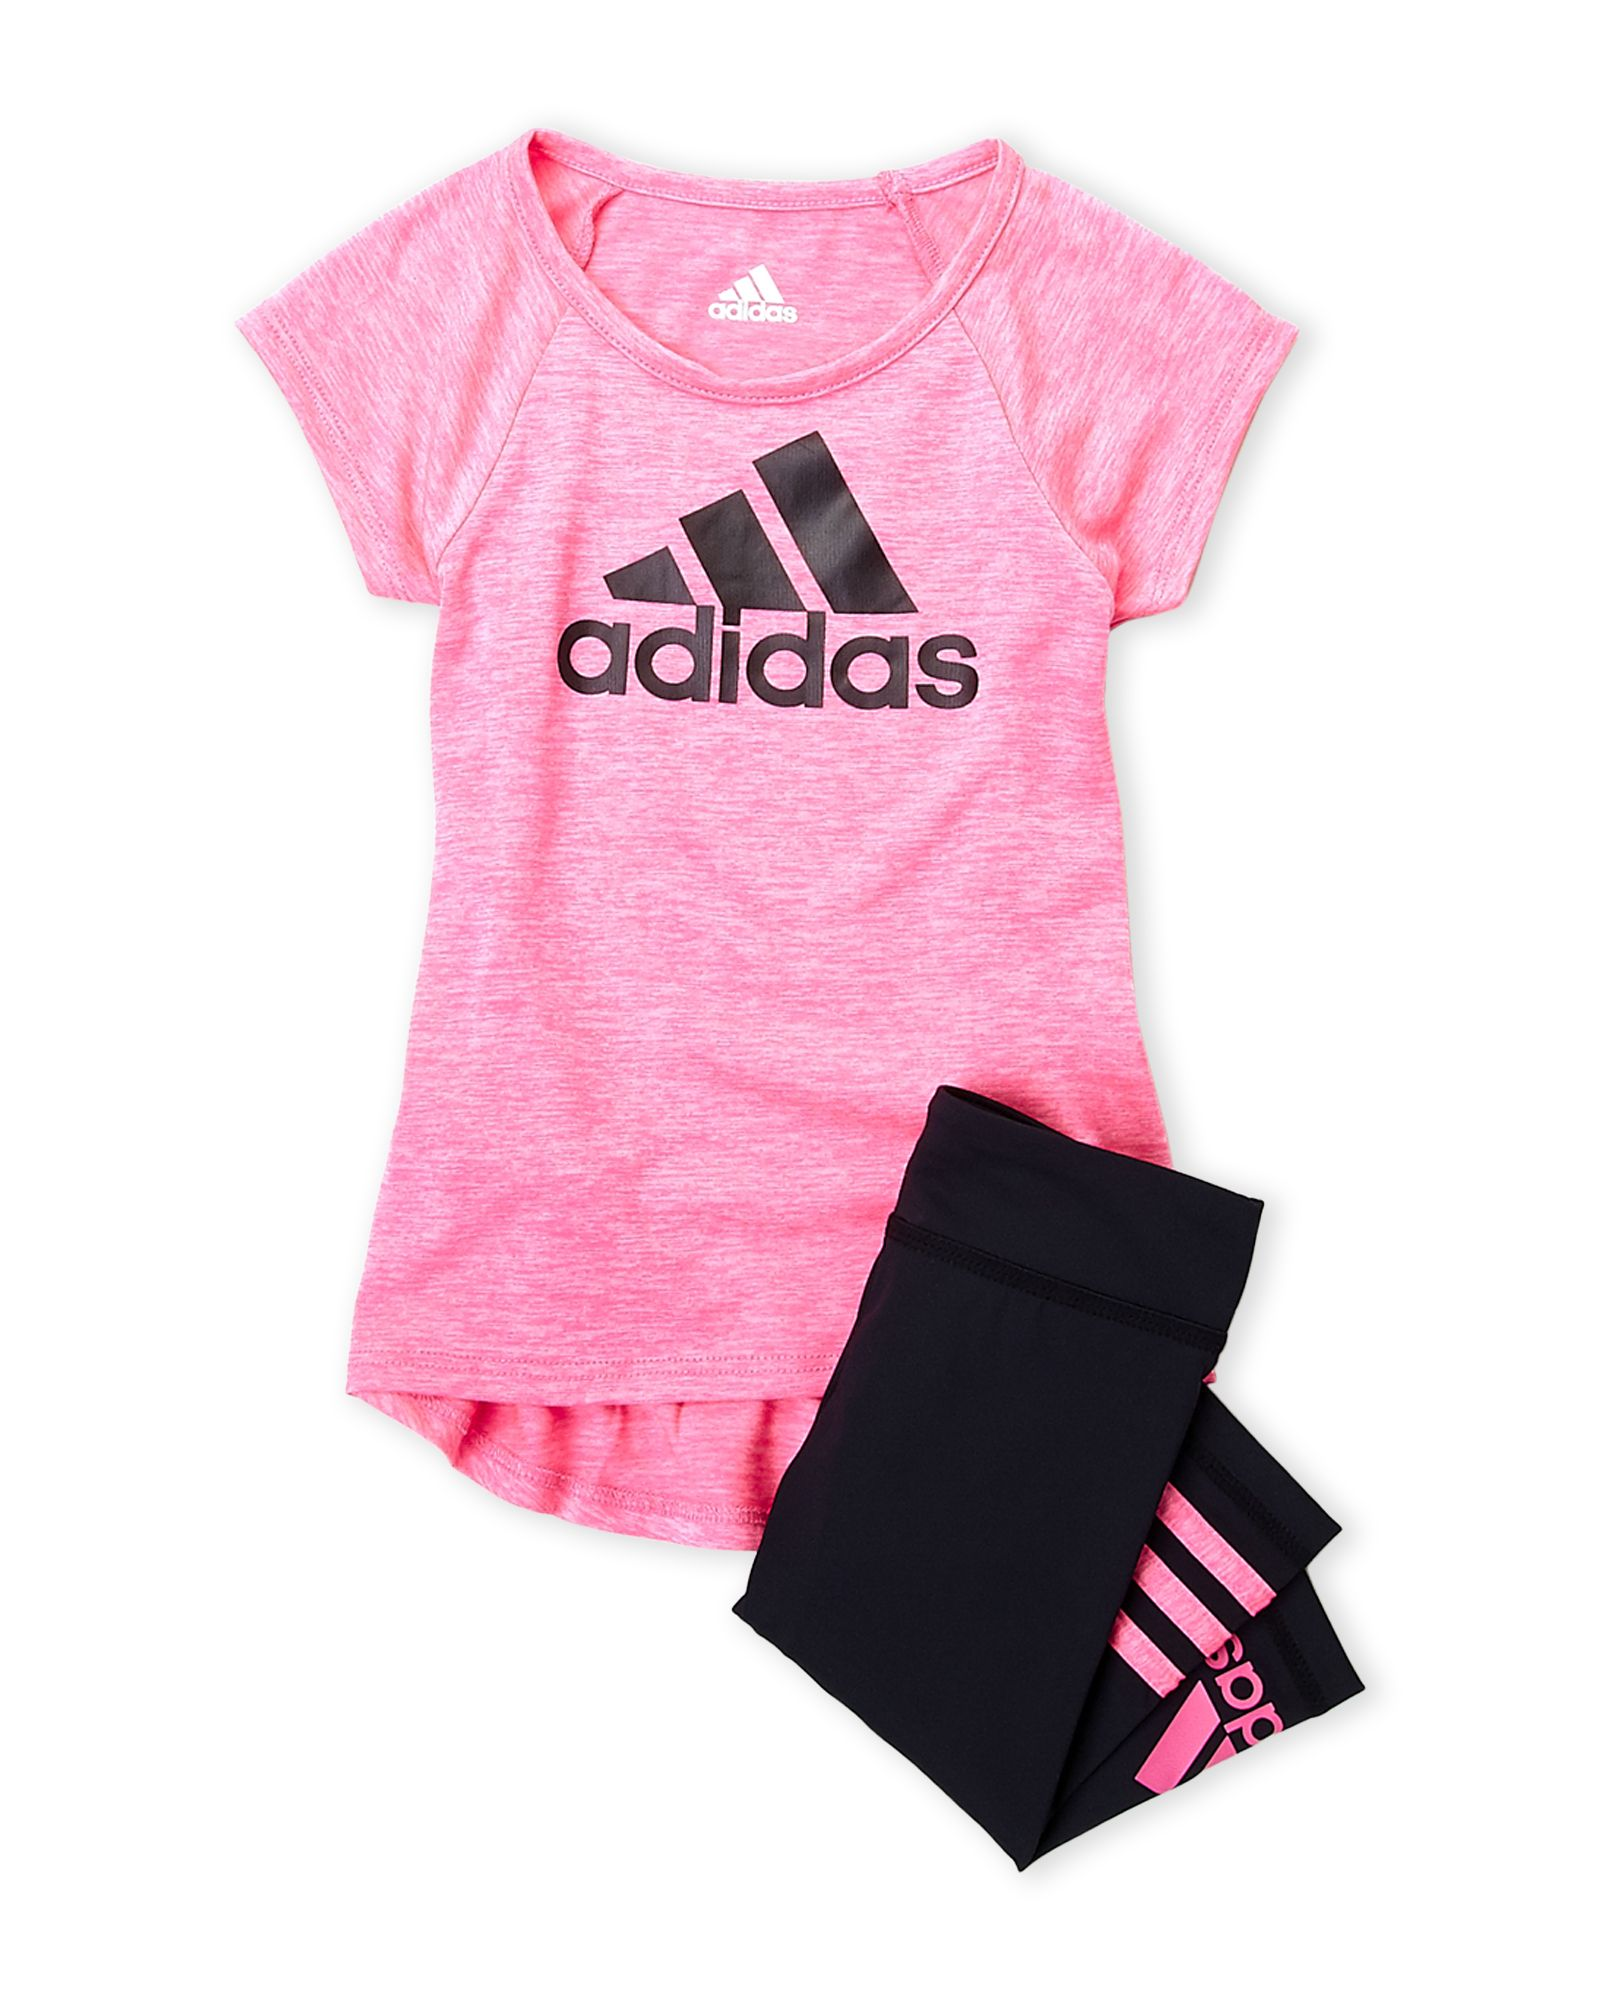 Girls Adidas Kids Clothing & Baby Clothes Macy's